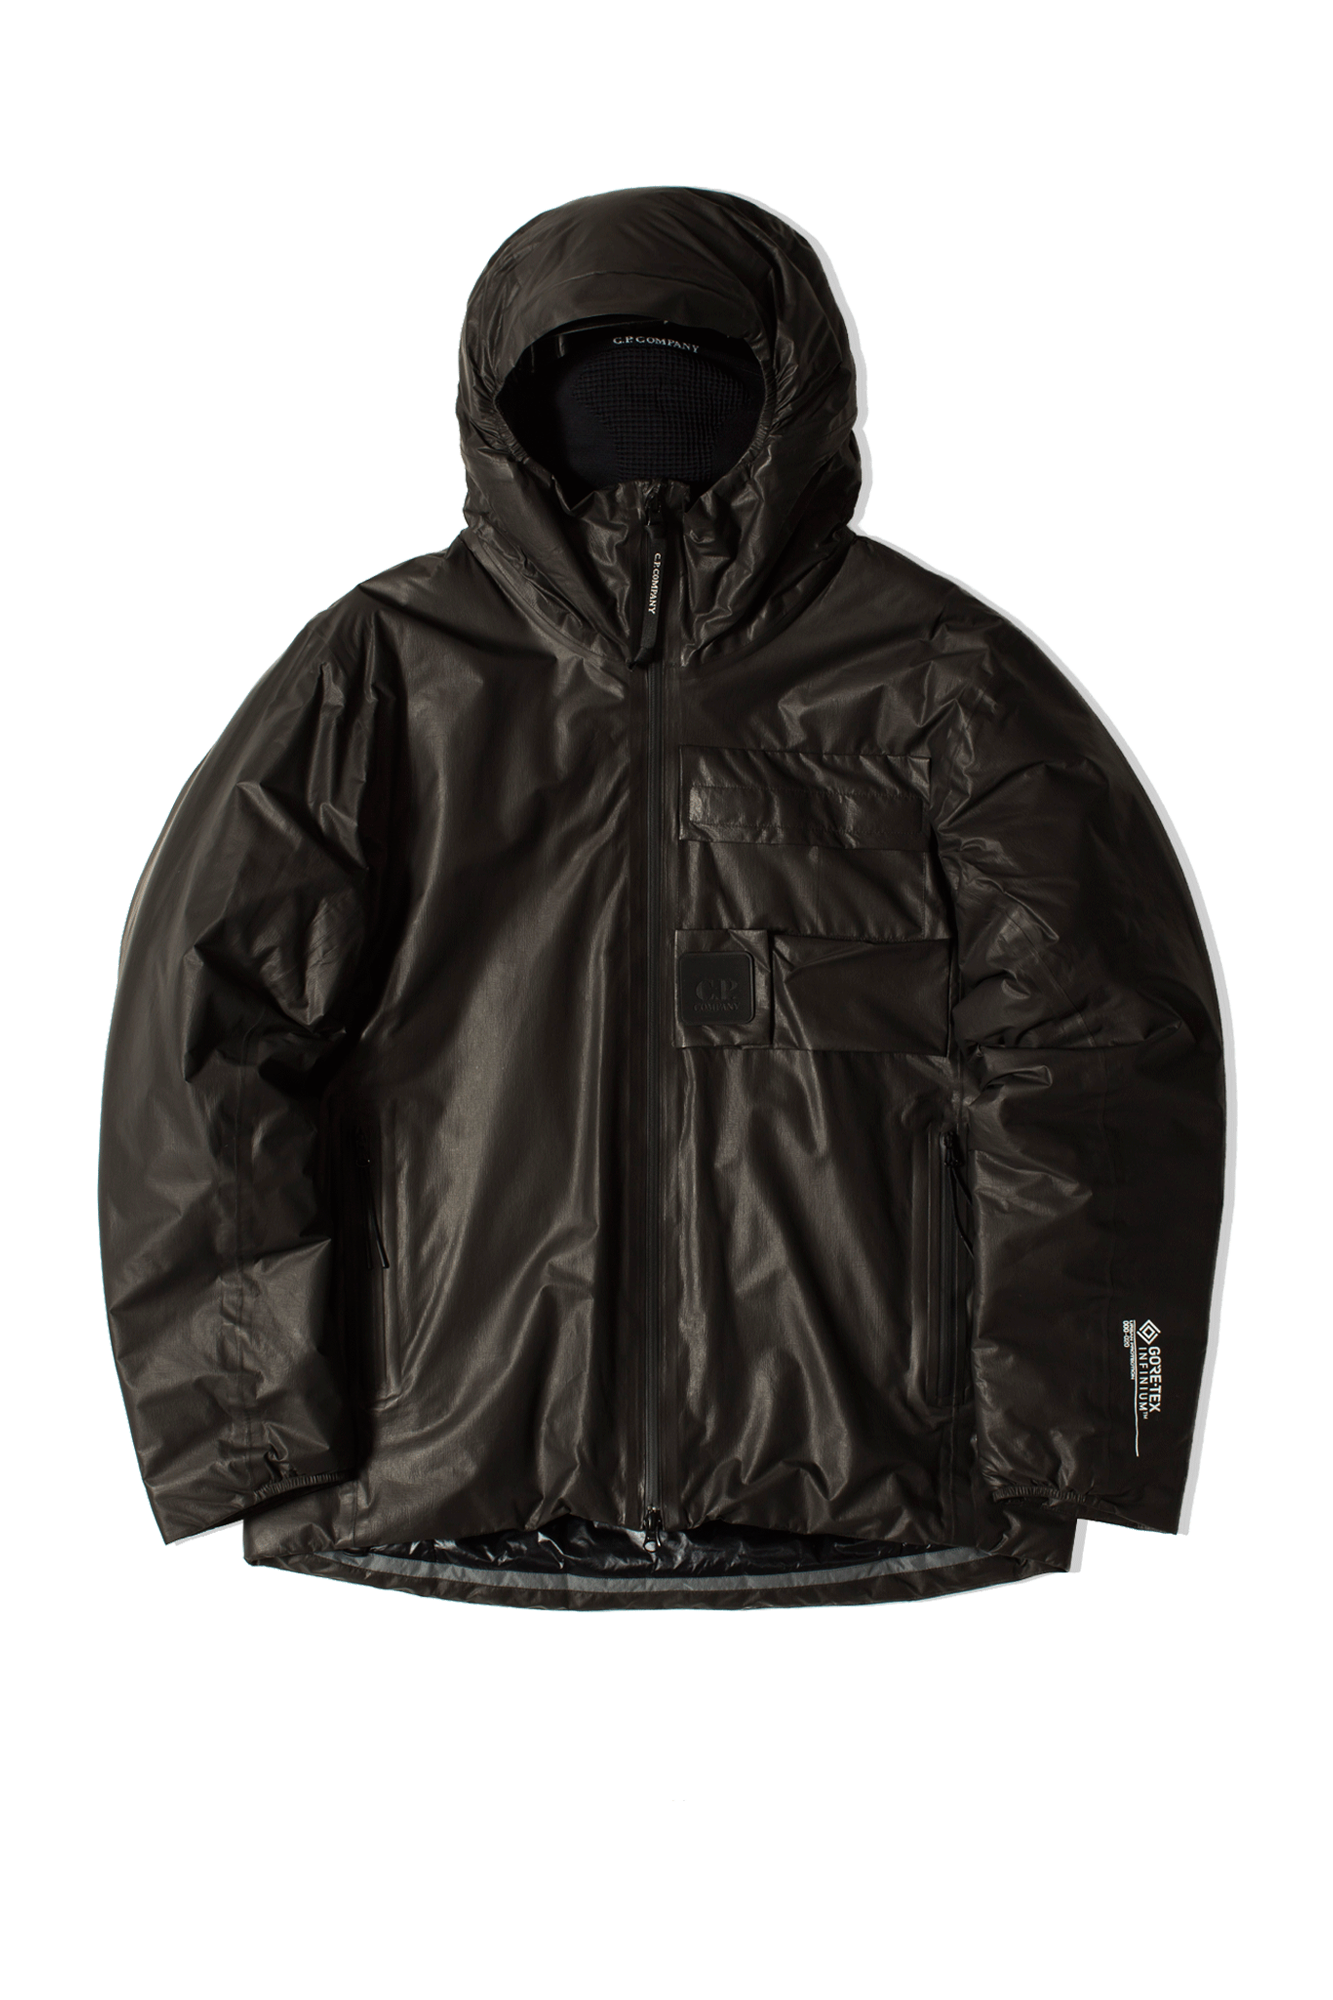 Medium Jacket Black